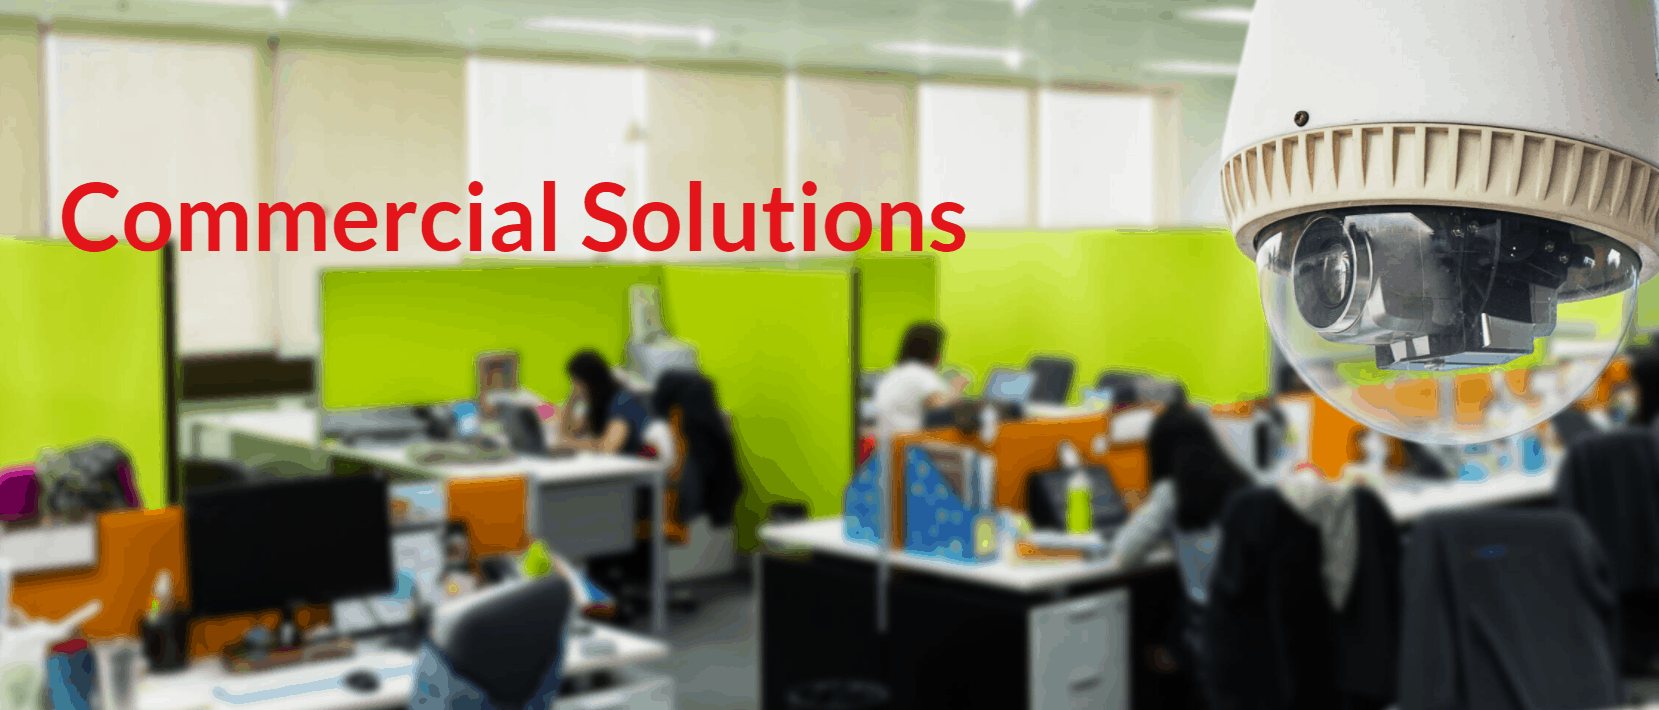 Commercial Solutions for Mobile